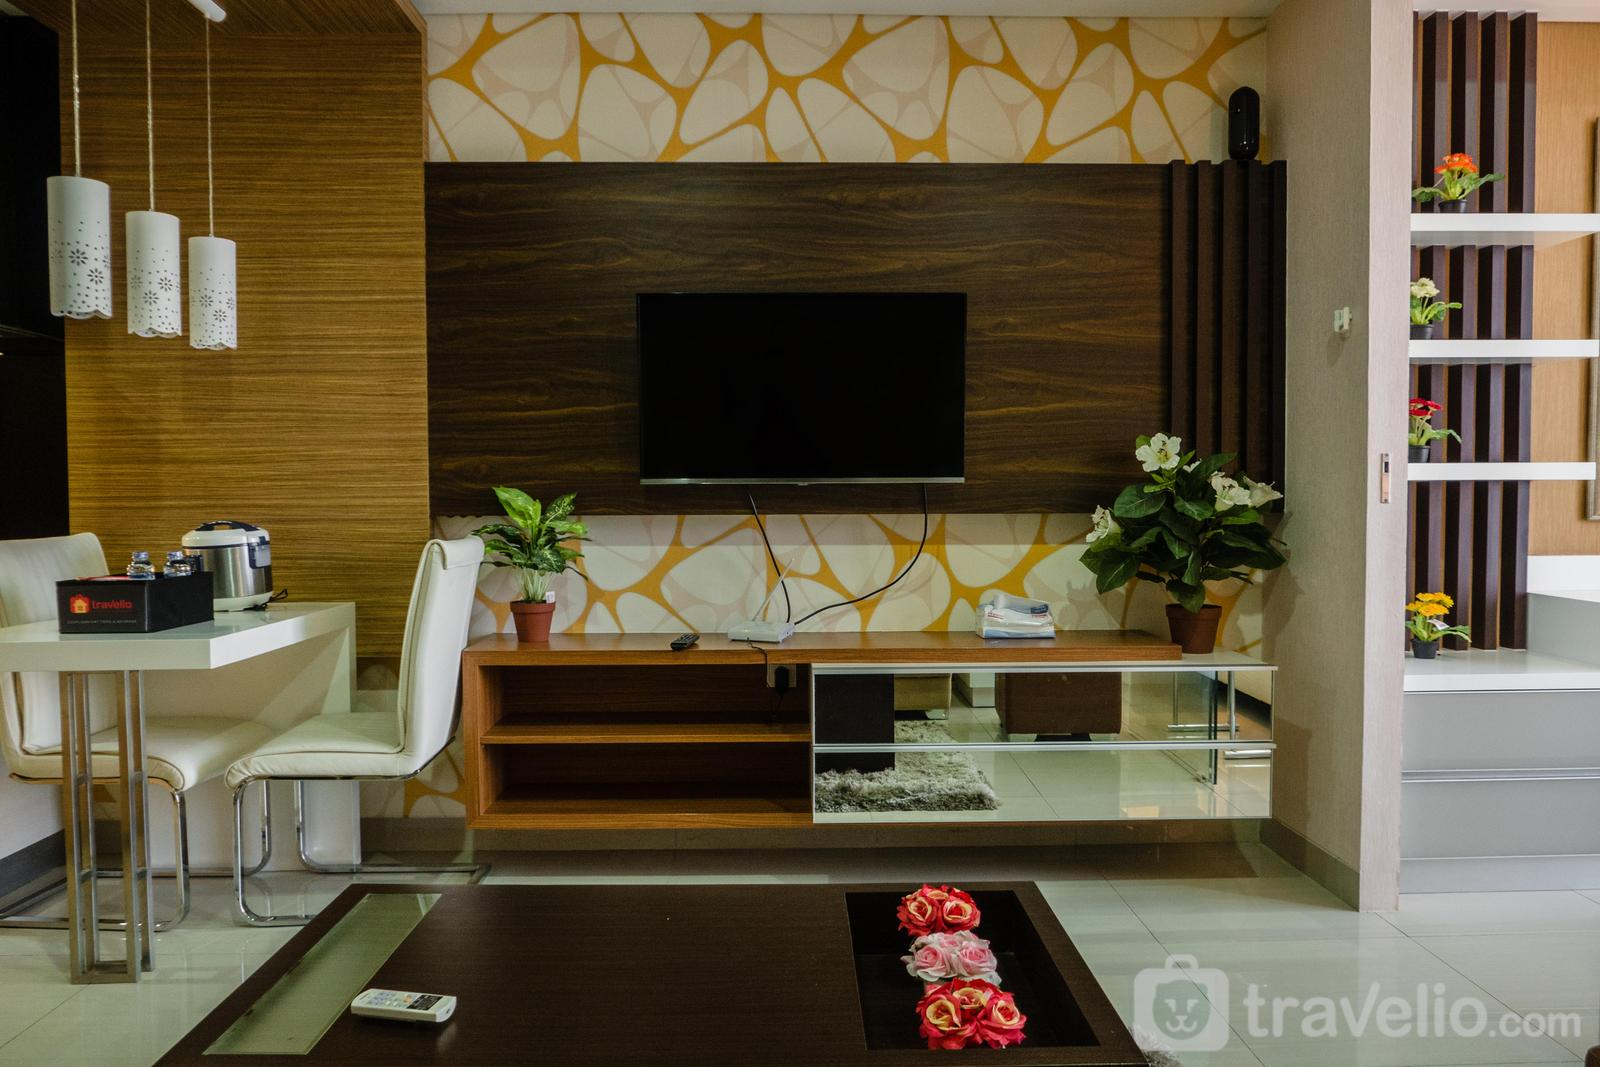 Dago Suites Apartment - Luxurious 1BR At Dago Suites Apartment By Travelio